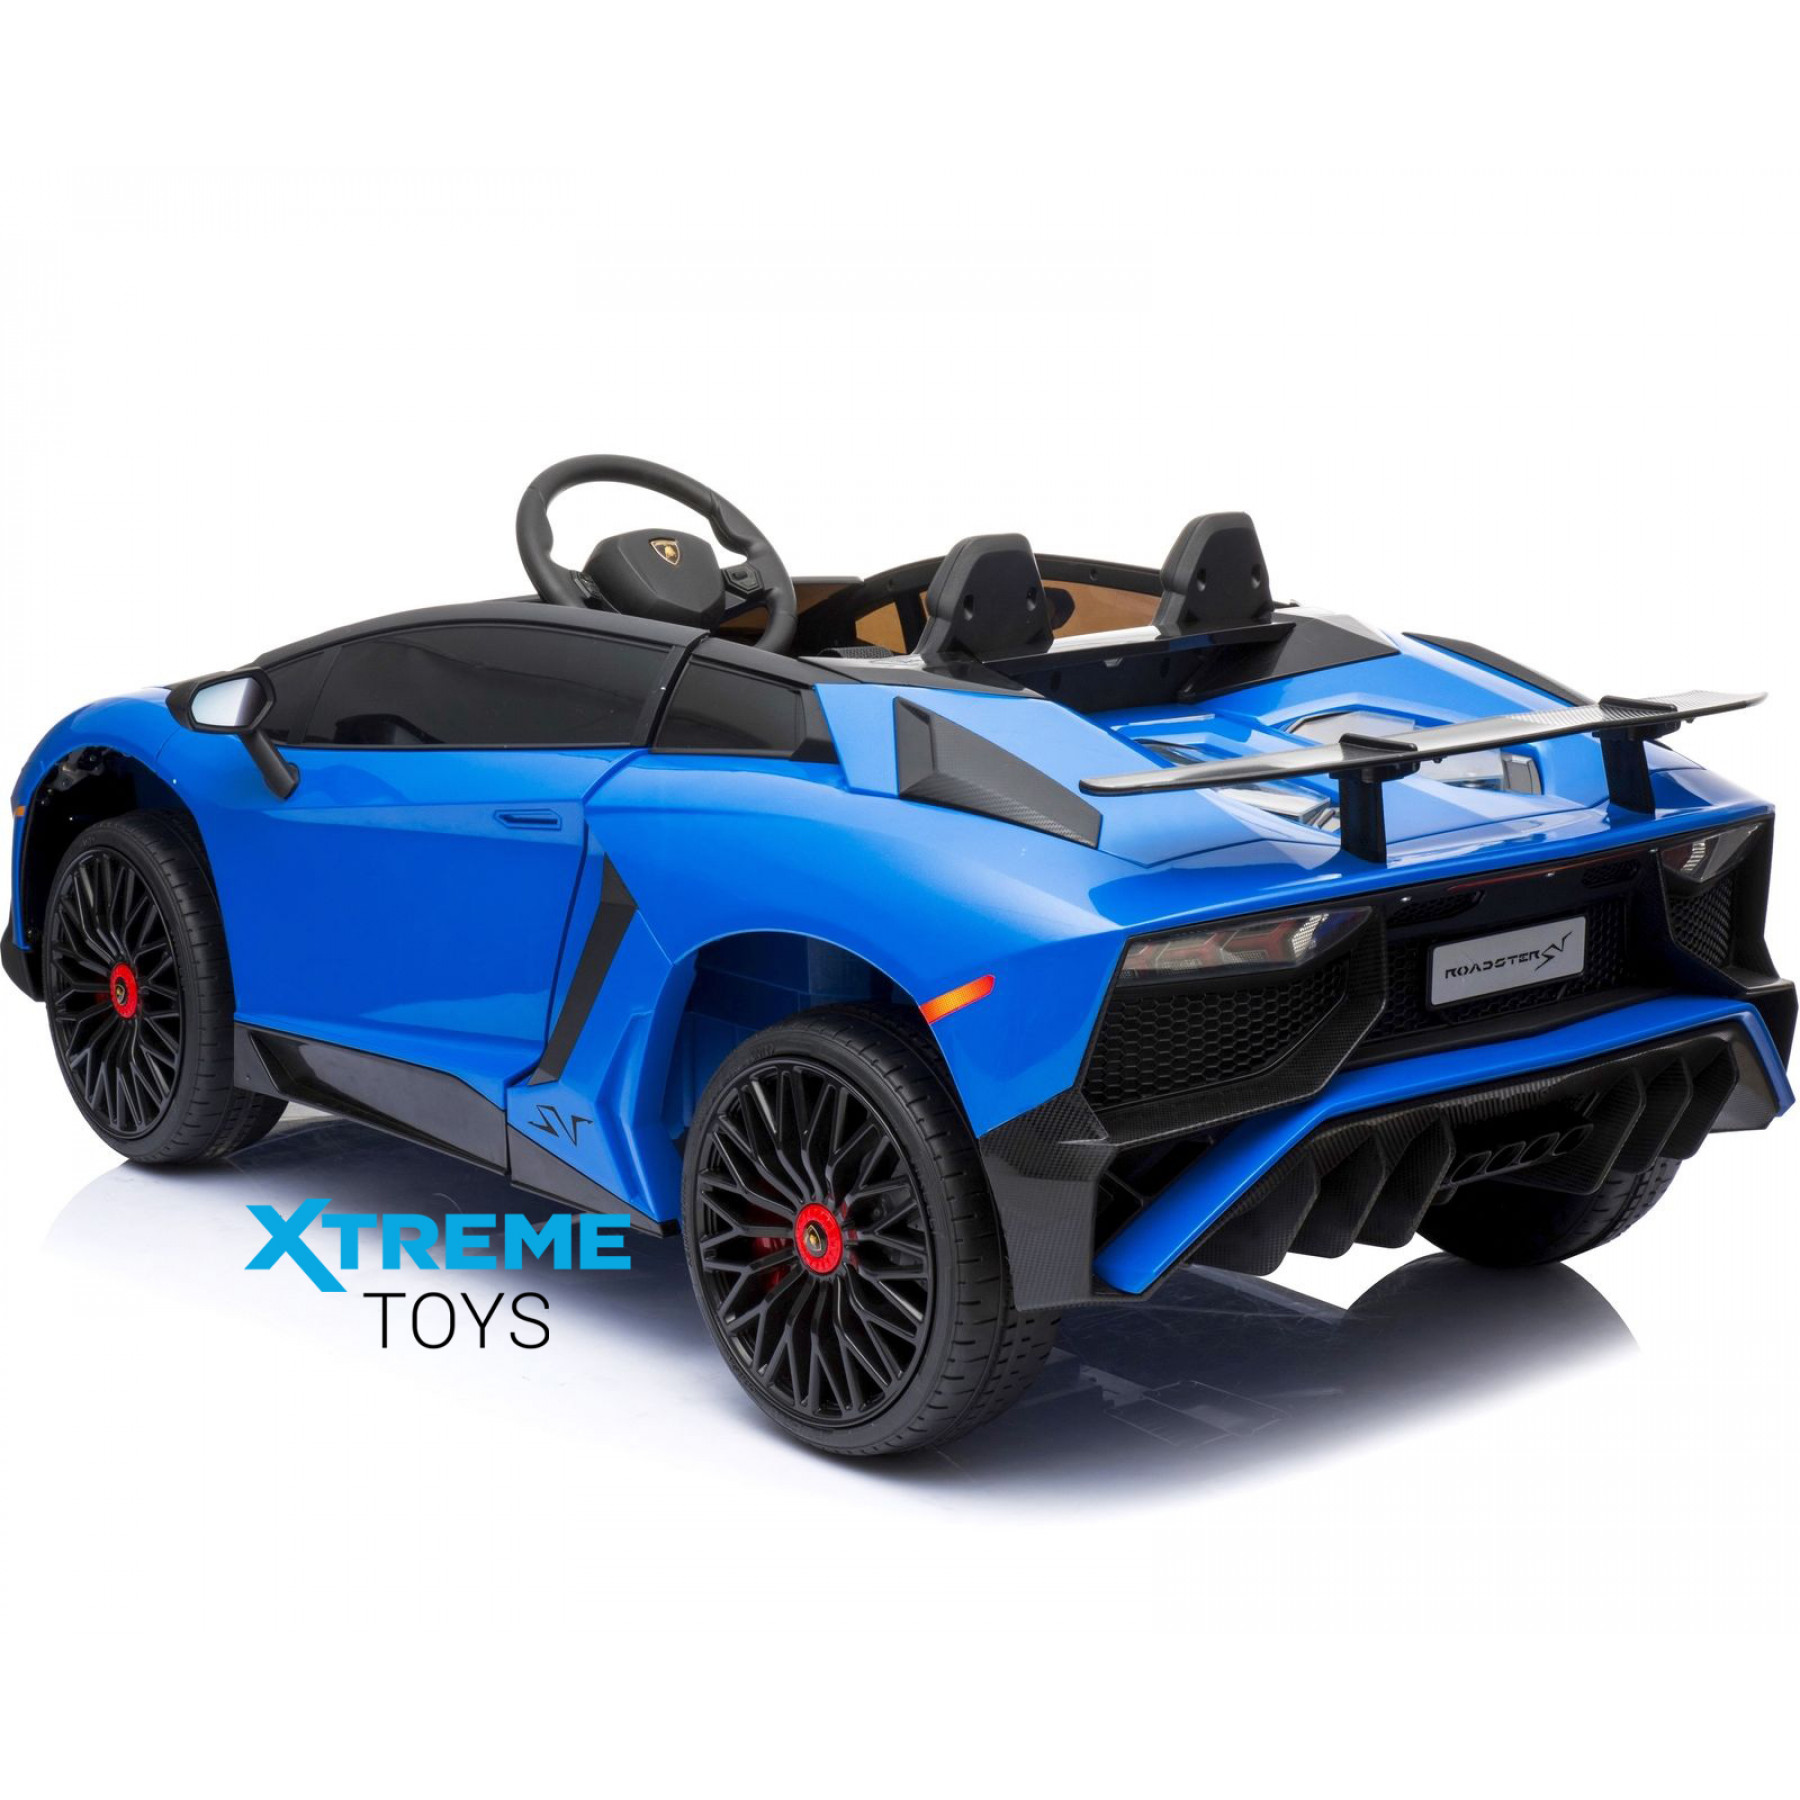 Xtreme 12v Official Licensed Lamborghini Aventador SV Ride on Car Blue